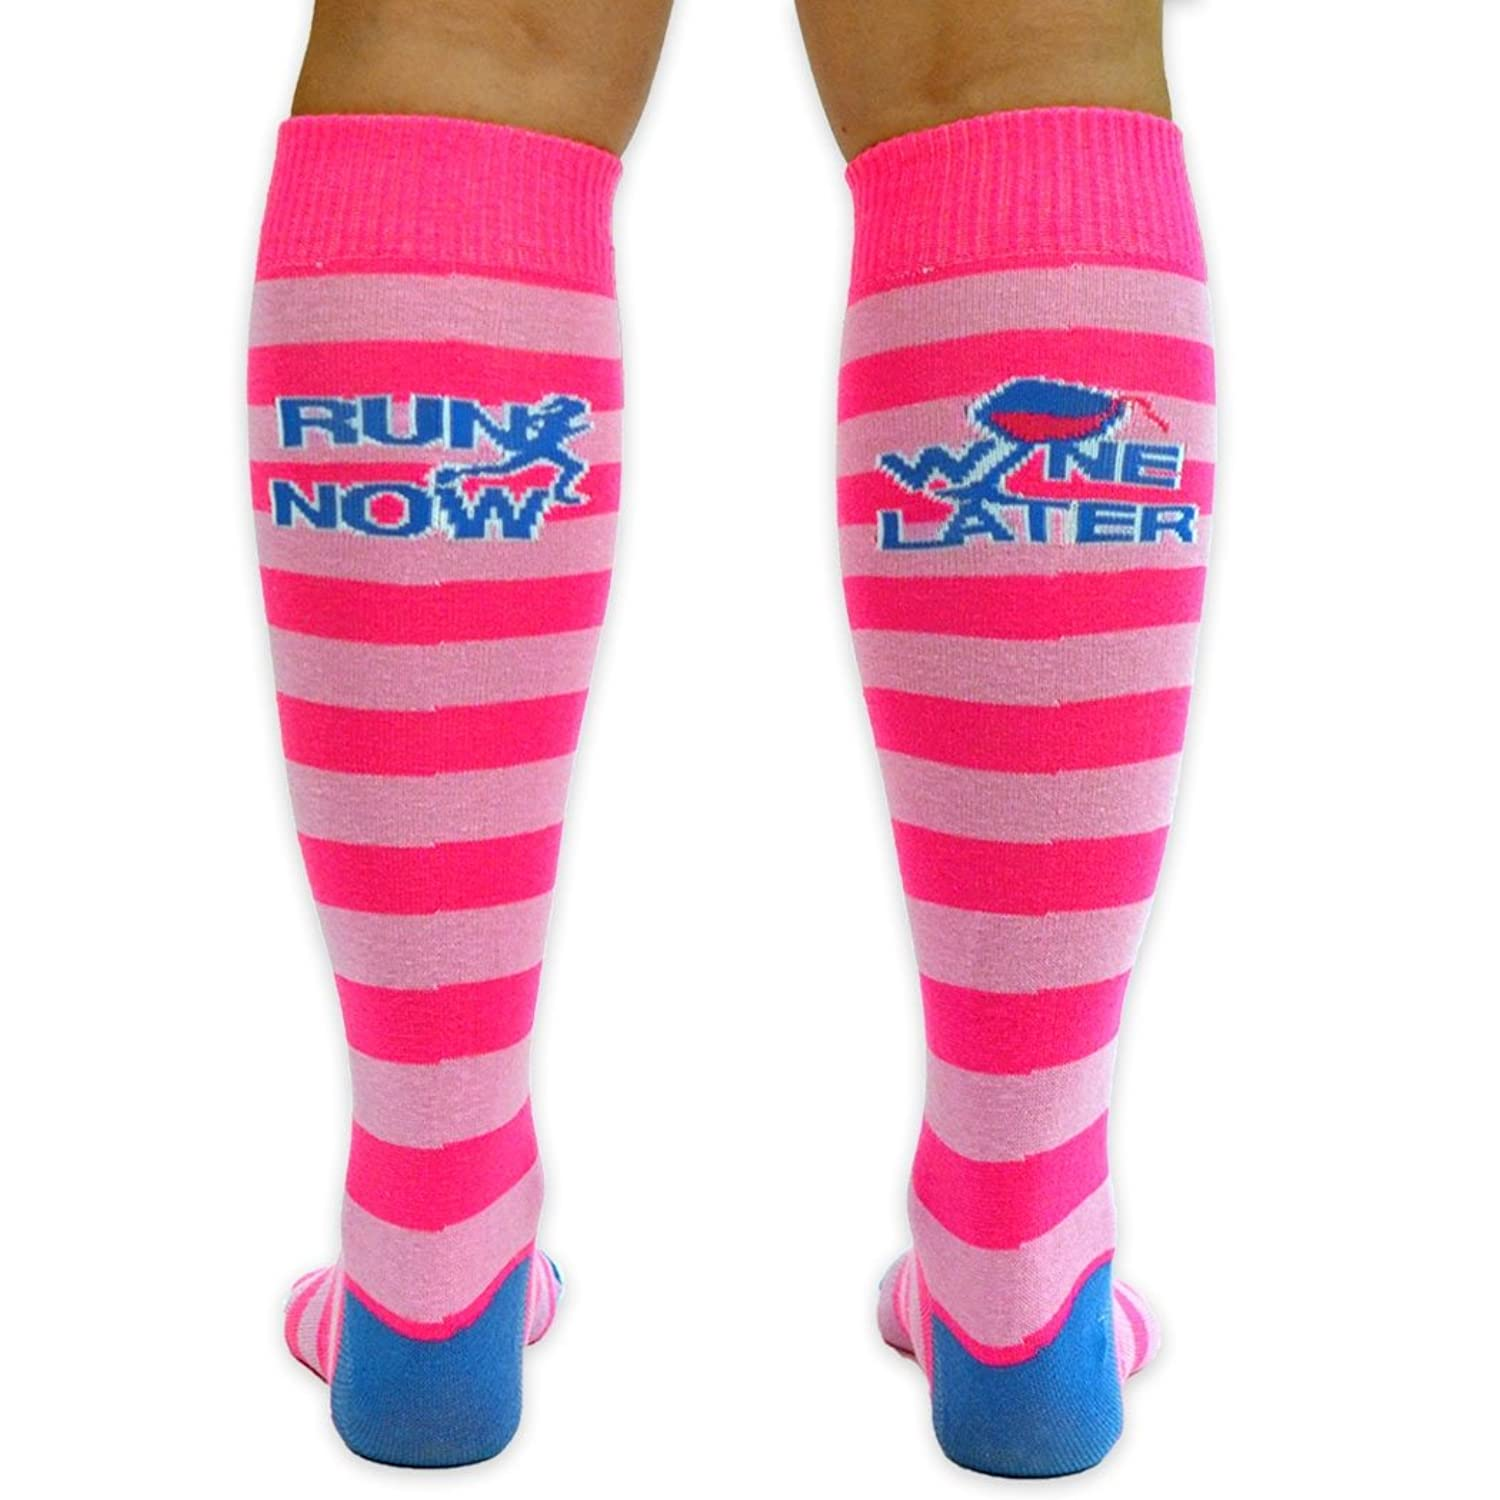 Yakety Yak! Knee Socks - Run Now Wine Later (Pink Stripes/Teal)